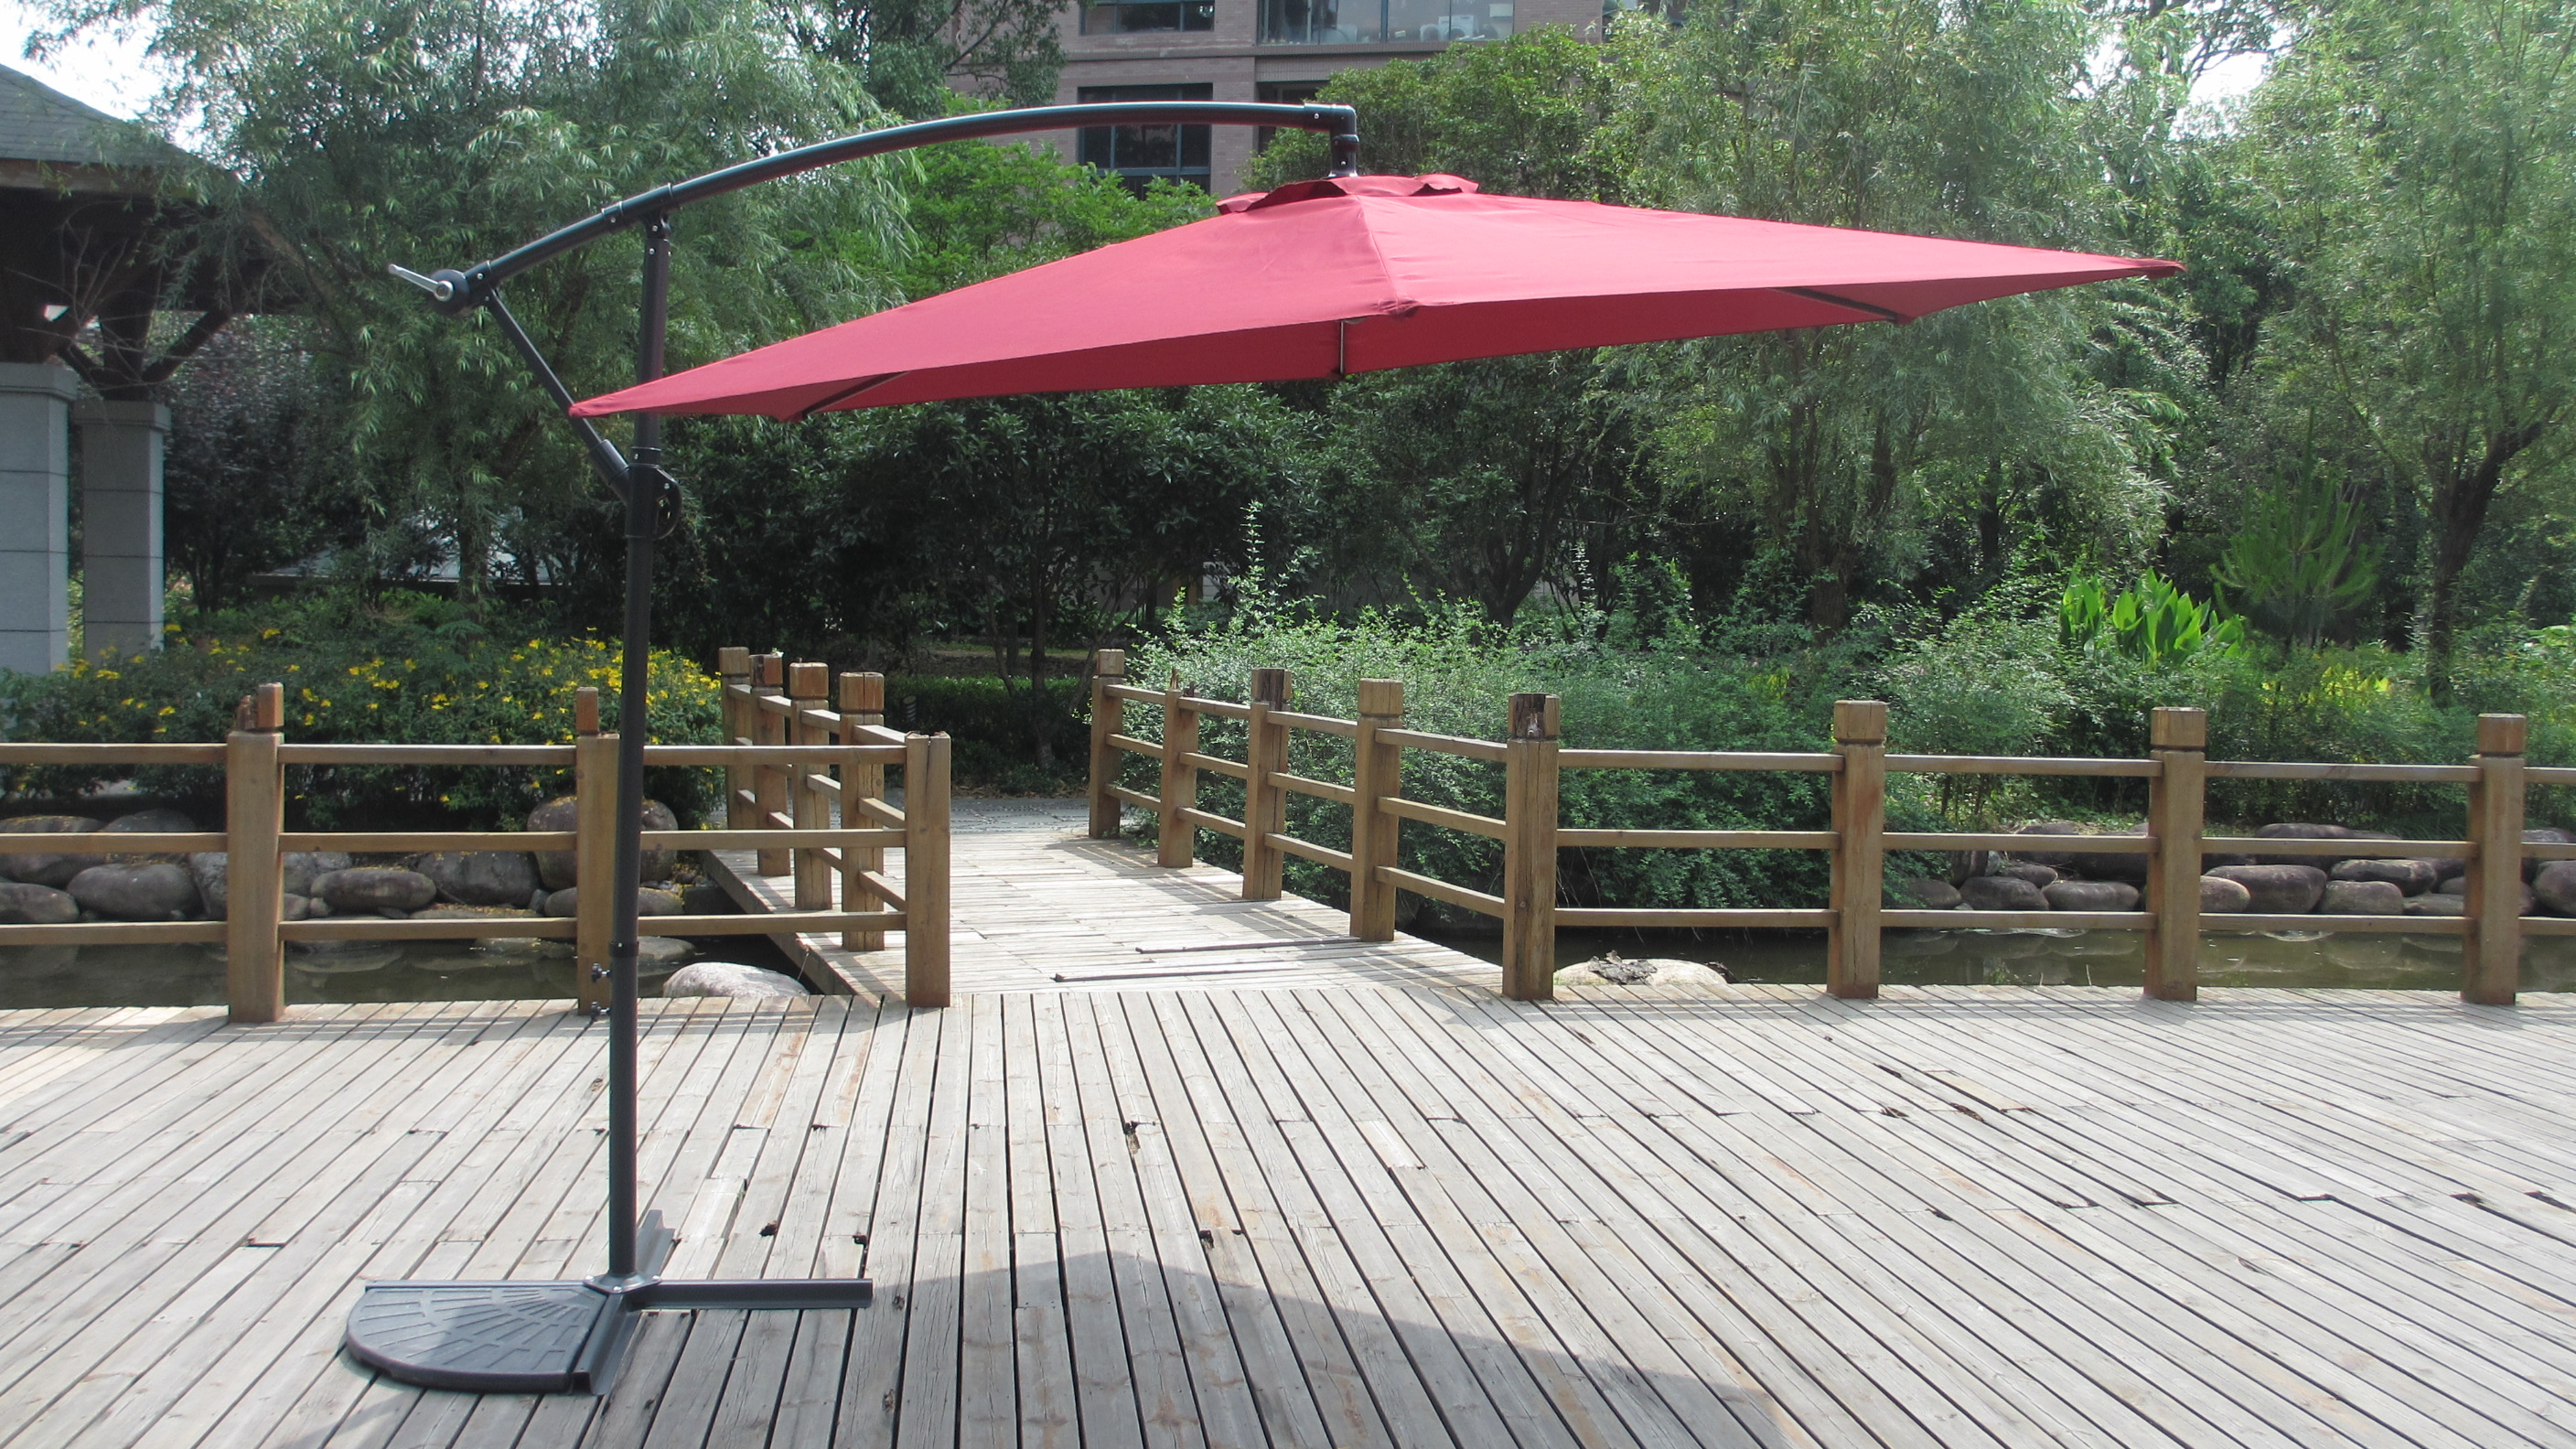 Furniture Red Cantilever Patio Umbrella With Black Stand For